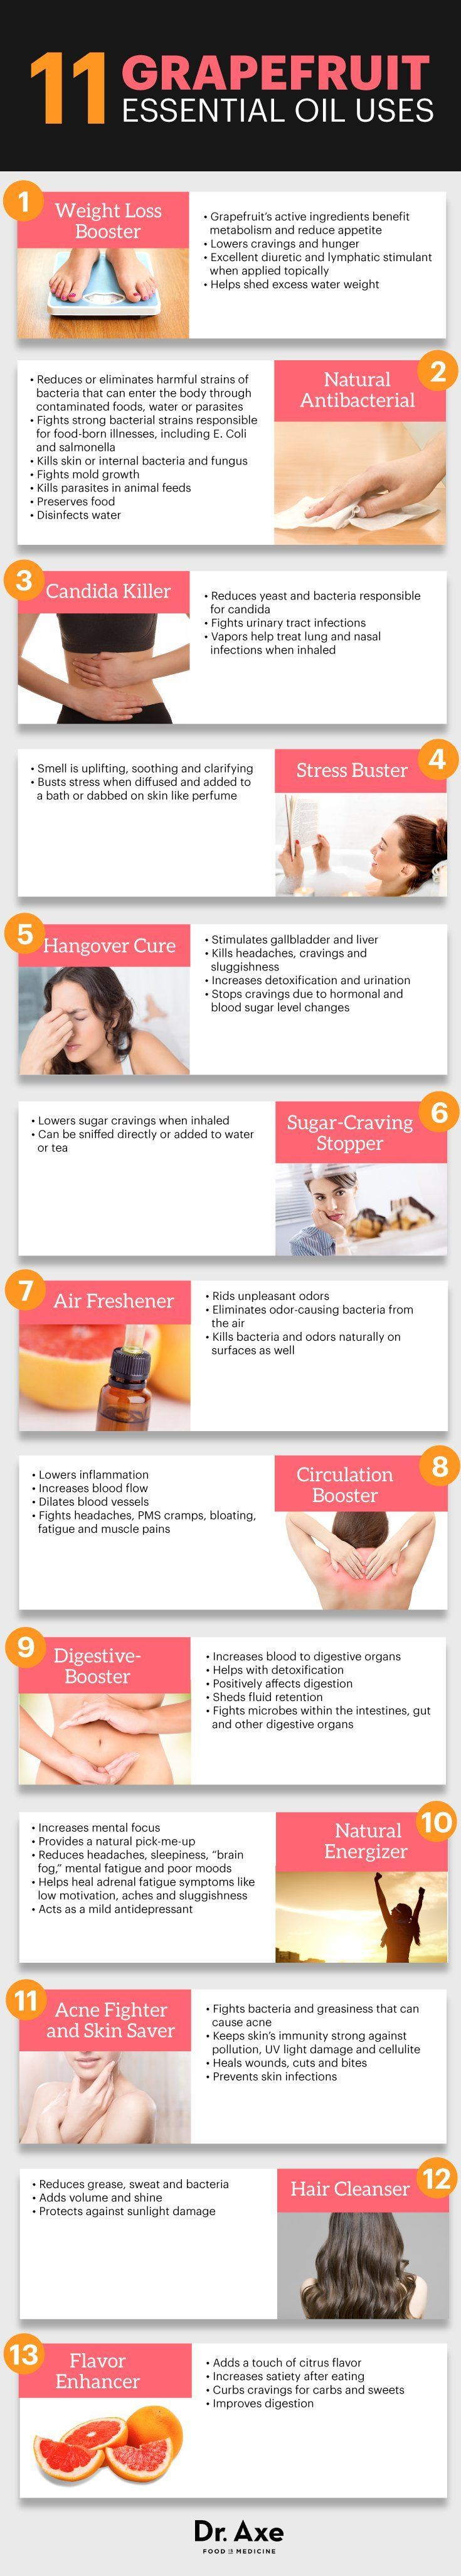 13 Grapefruit Essential Oil Benefits — Starting with Weight Loss - Dr. Axe